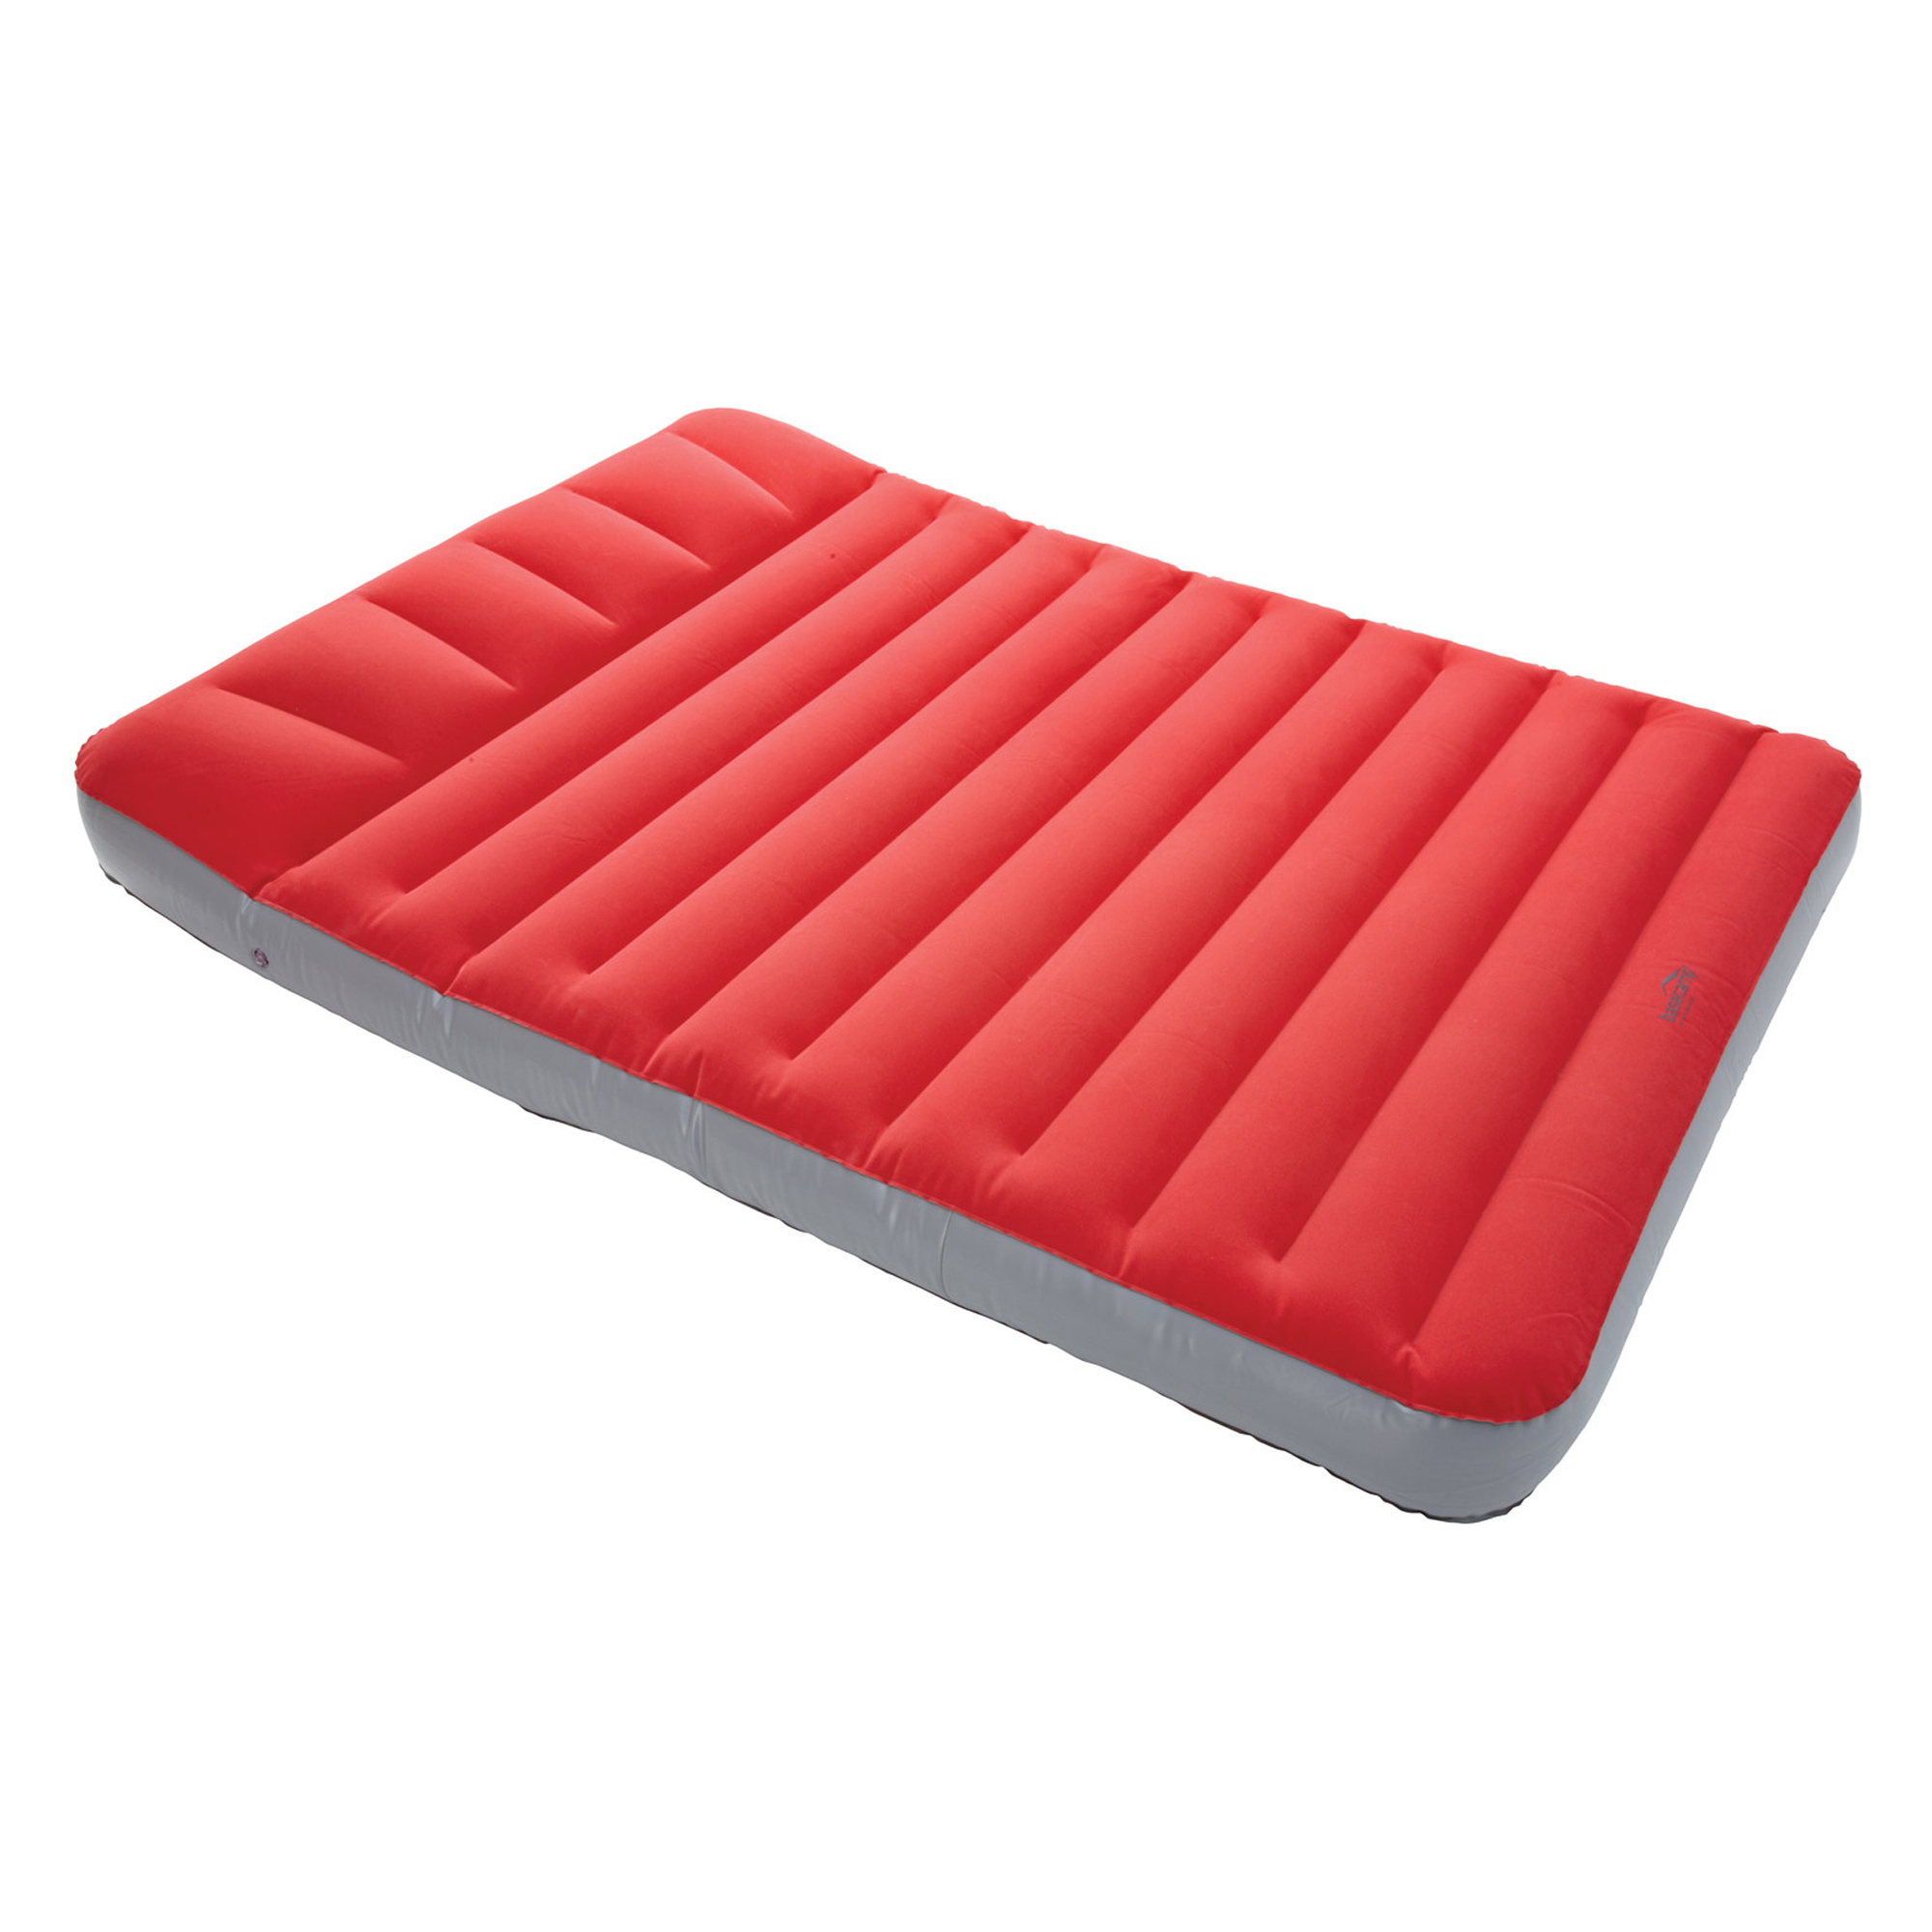 Kathmandu Roamer Camping Sleeping Inflatable Mattress Double Air Bed V2 Red Ebay